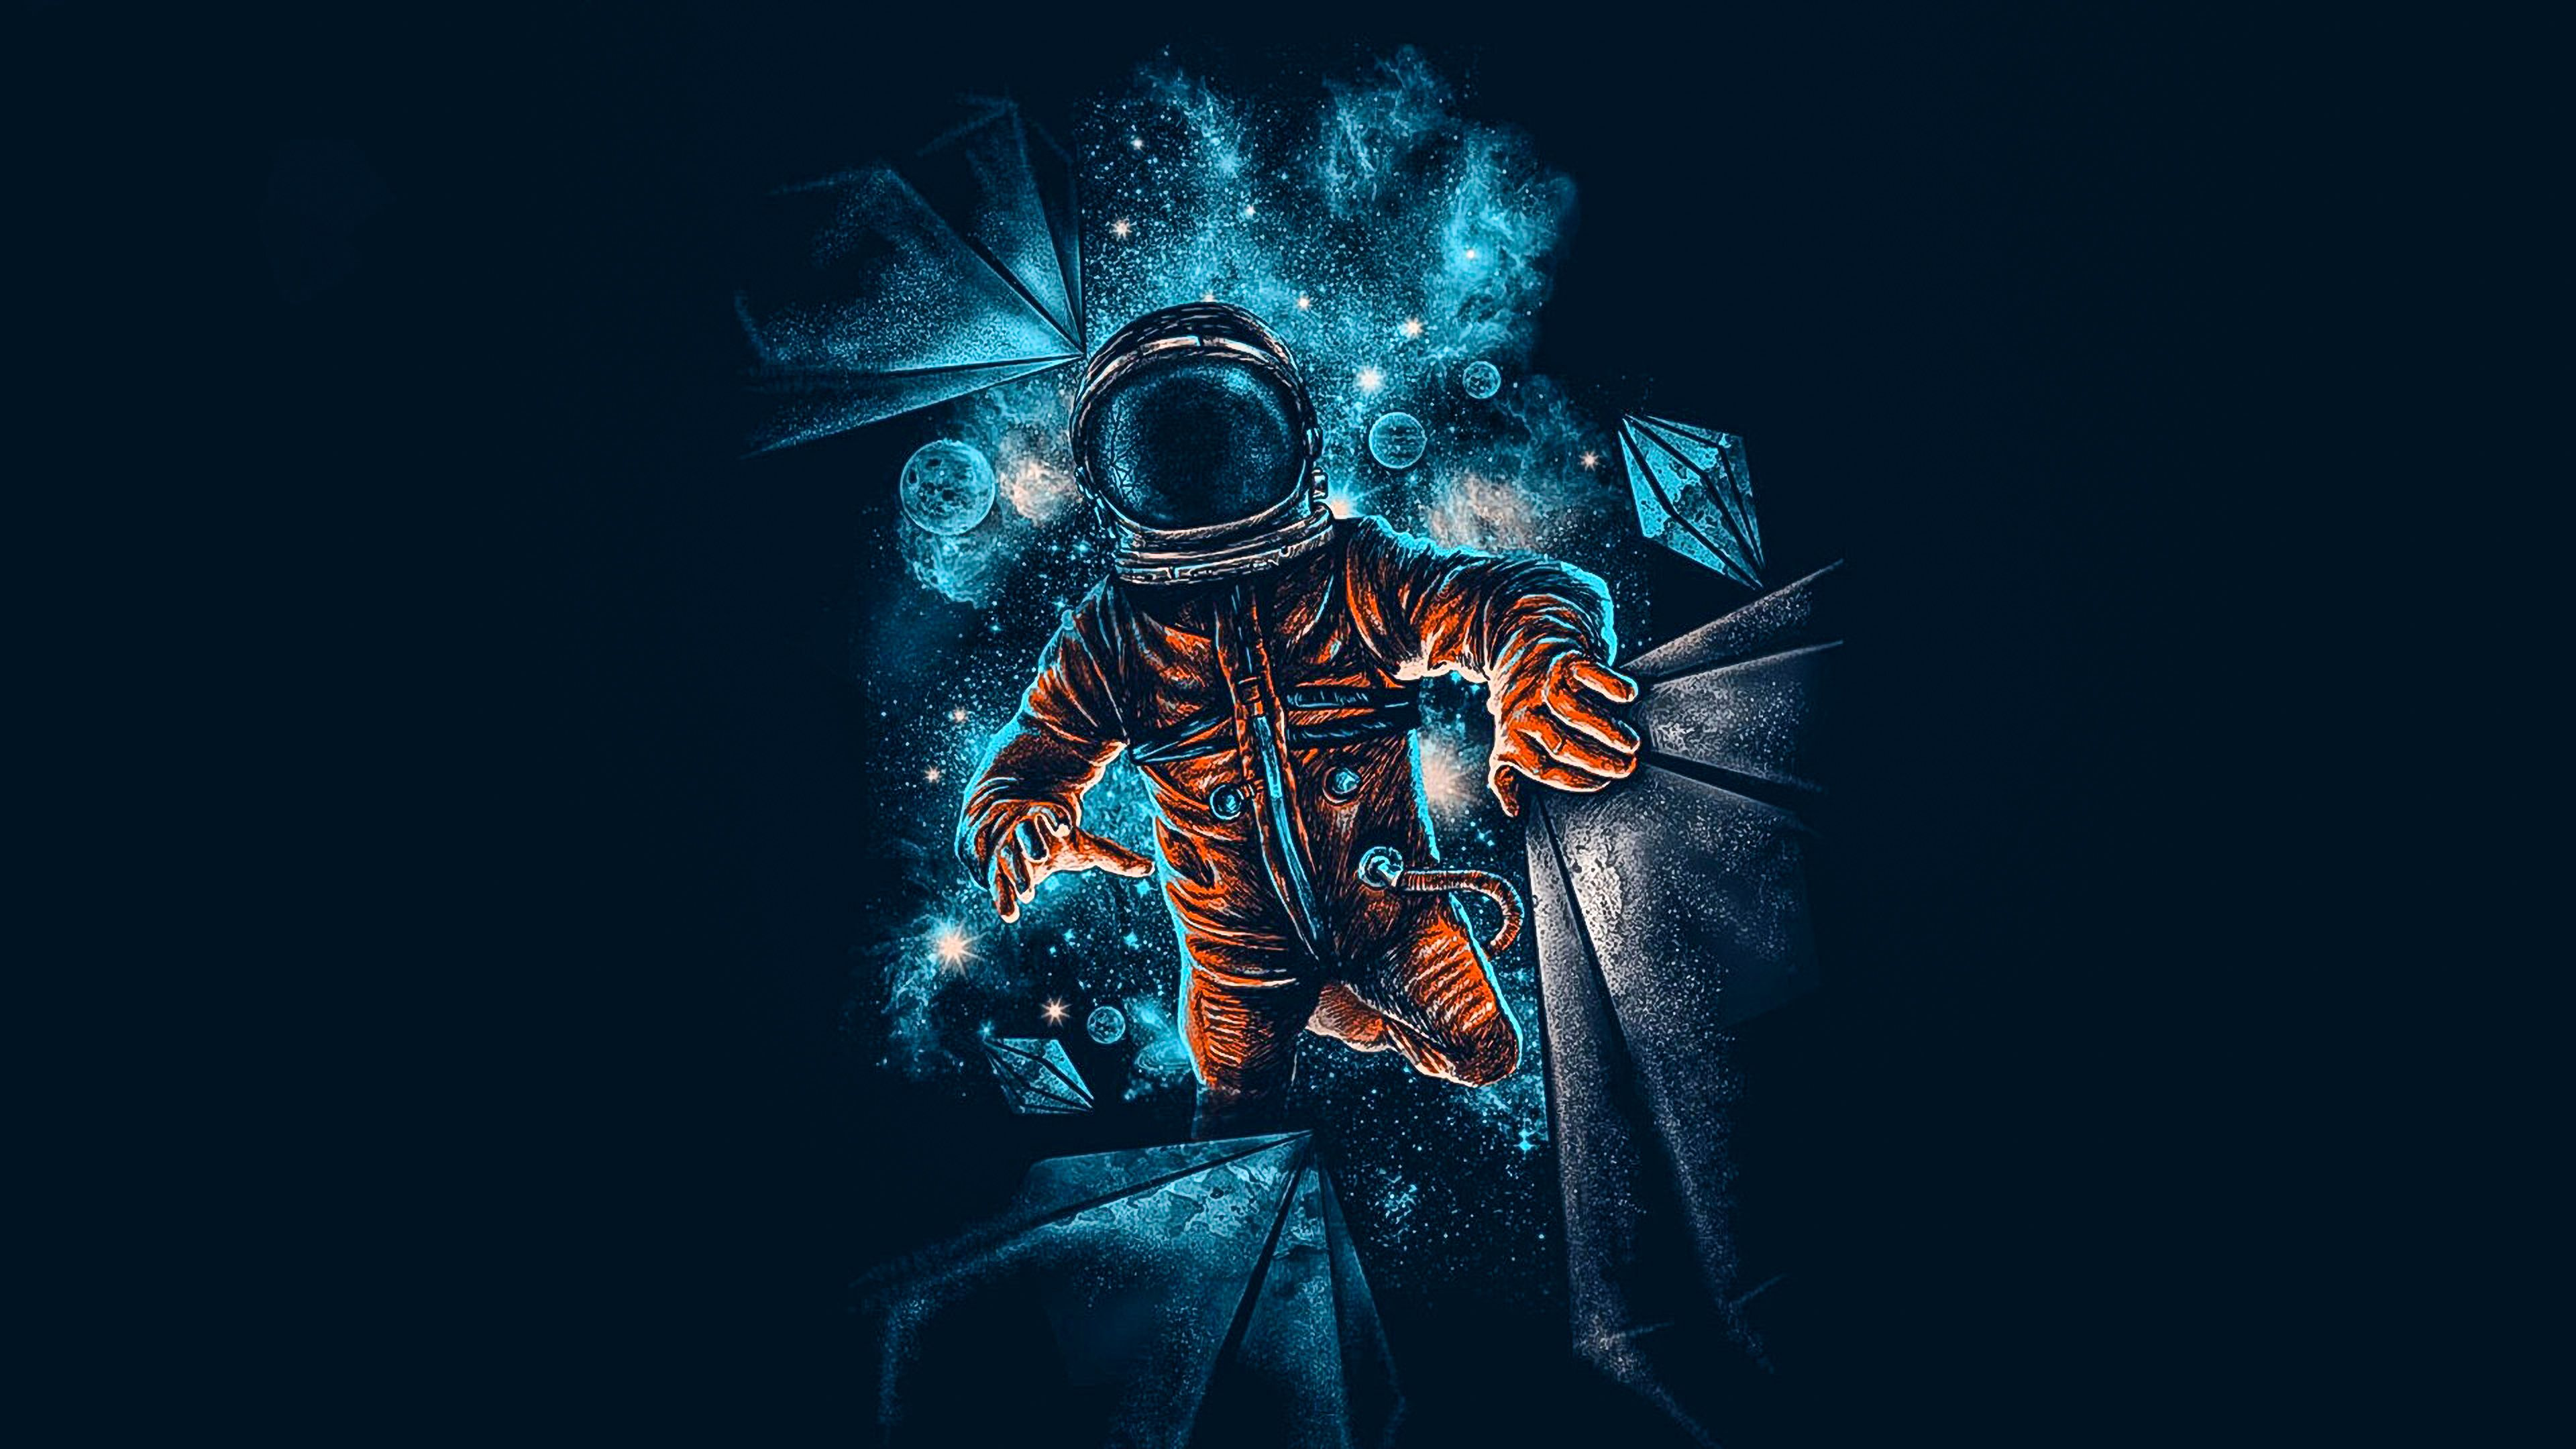 Spaceman Wallpapers Top Free Spaceman Backgrounds Wallpaperaccess